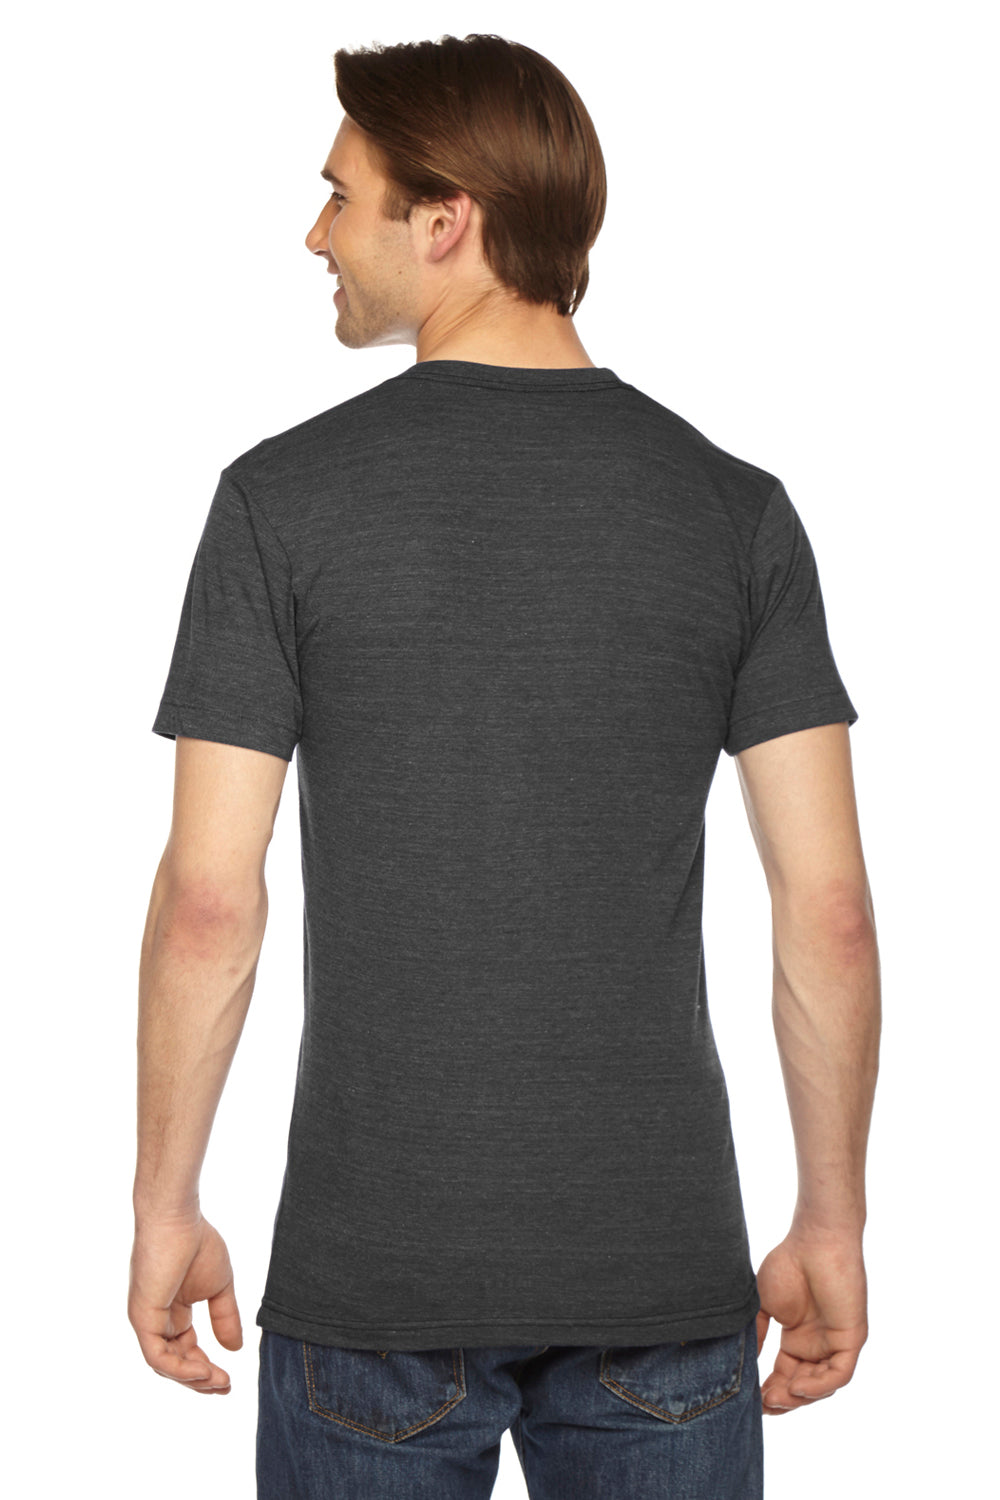 American Apparel TR401W Mens Track Short Sleeve Crewneck T-Shirt Black Back